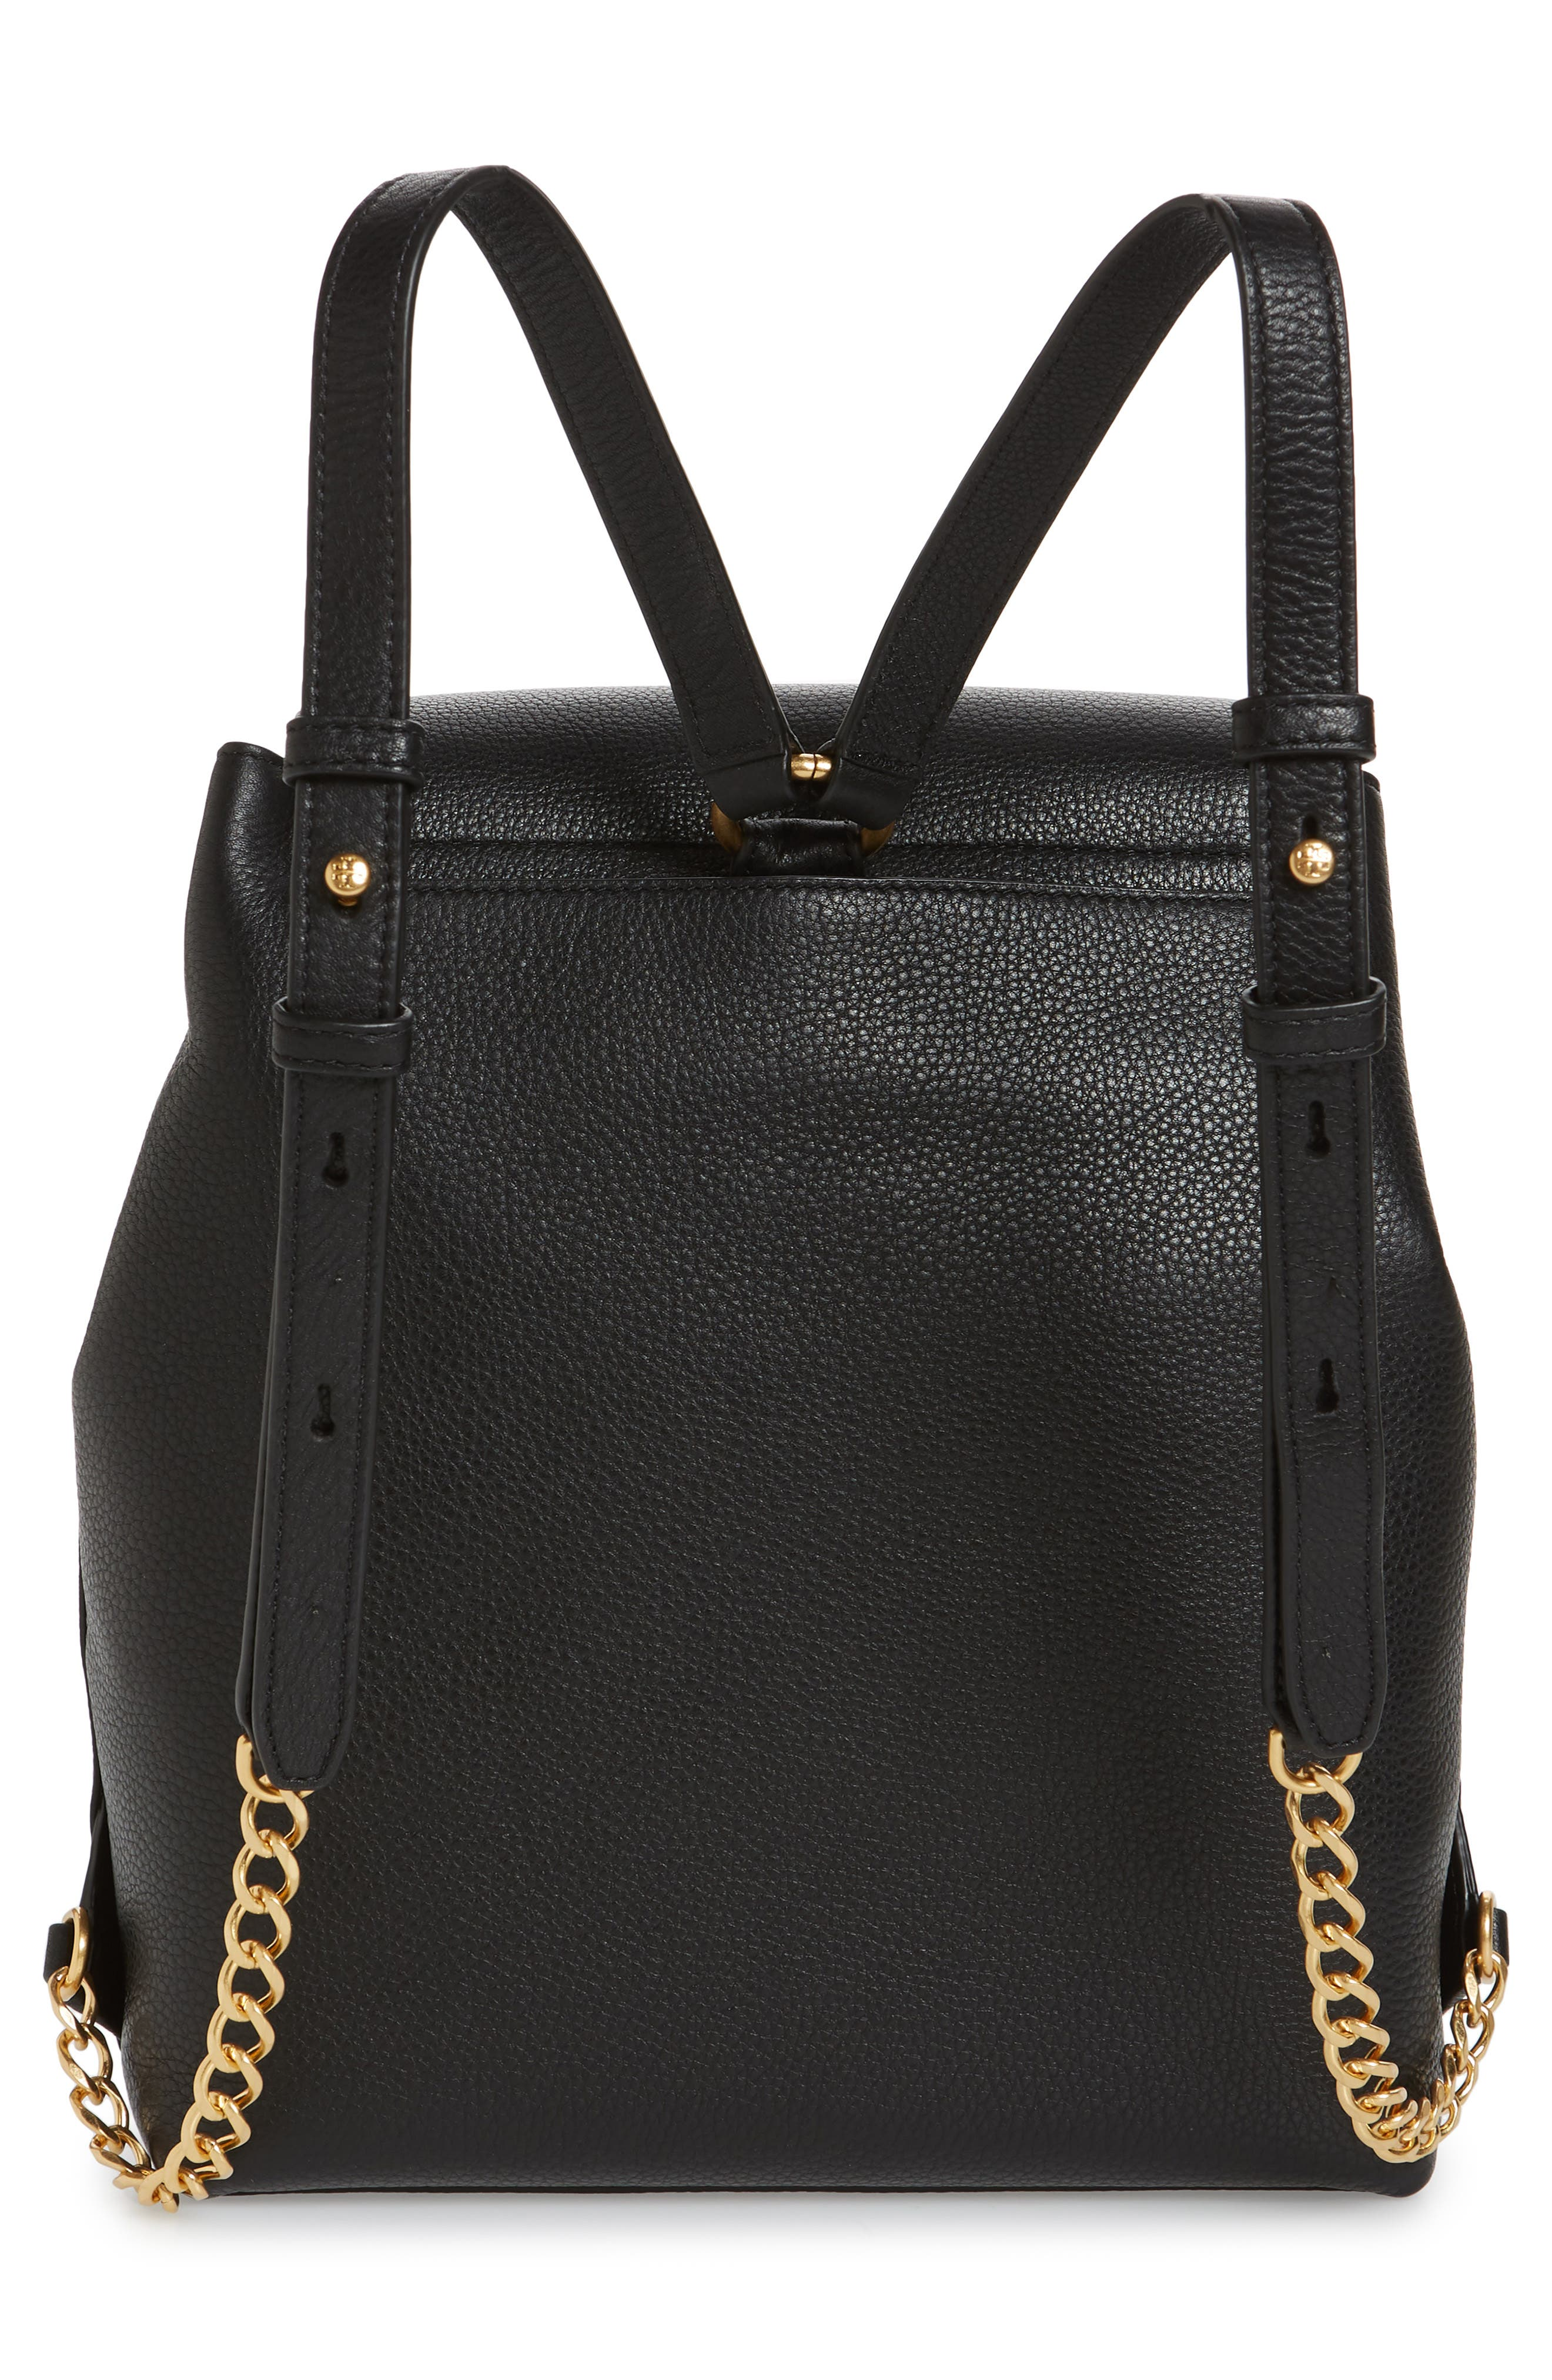 Chelsea Leather Backpack,                             Alternate thumbnail 3, color,                             001